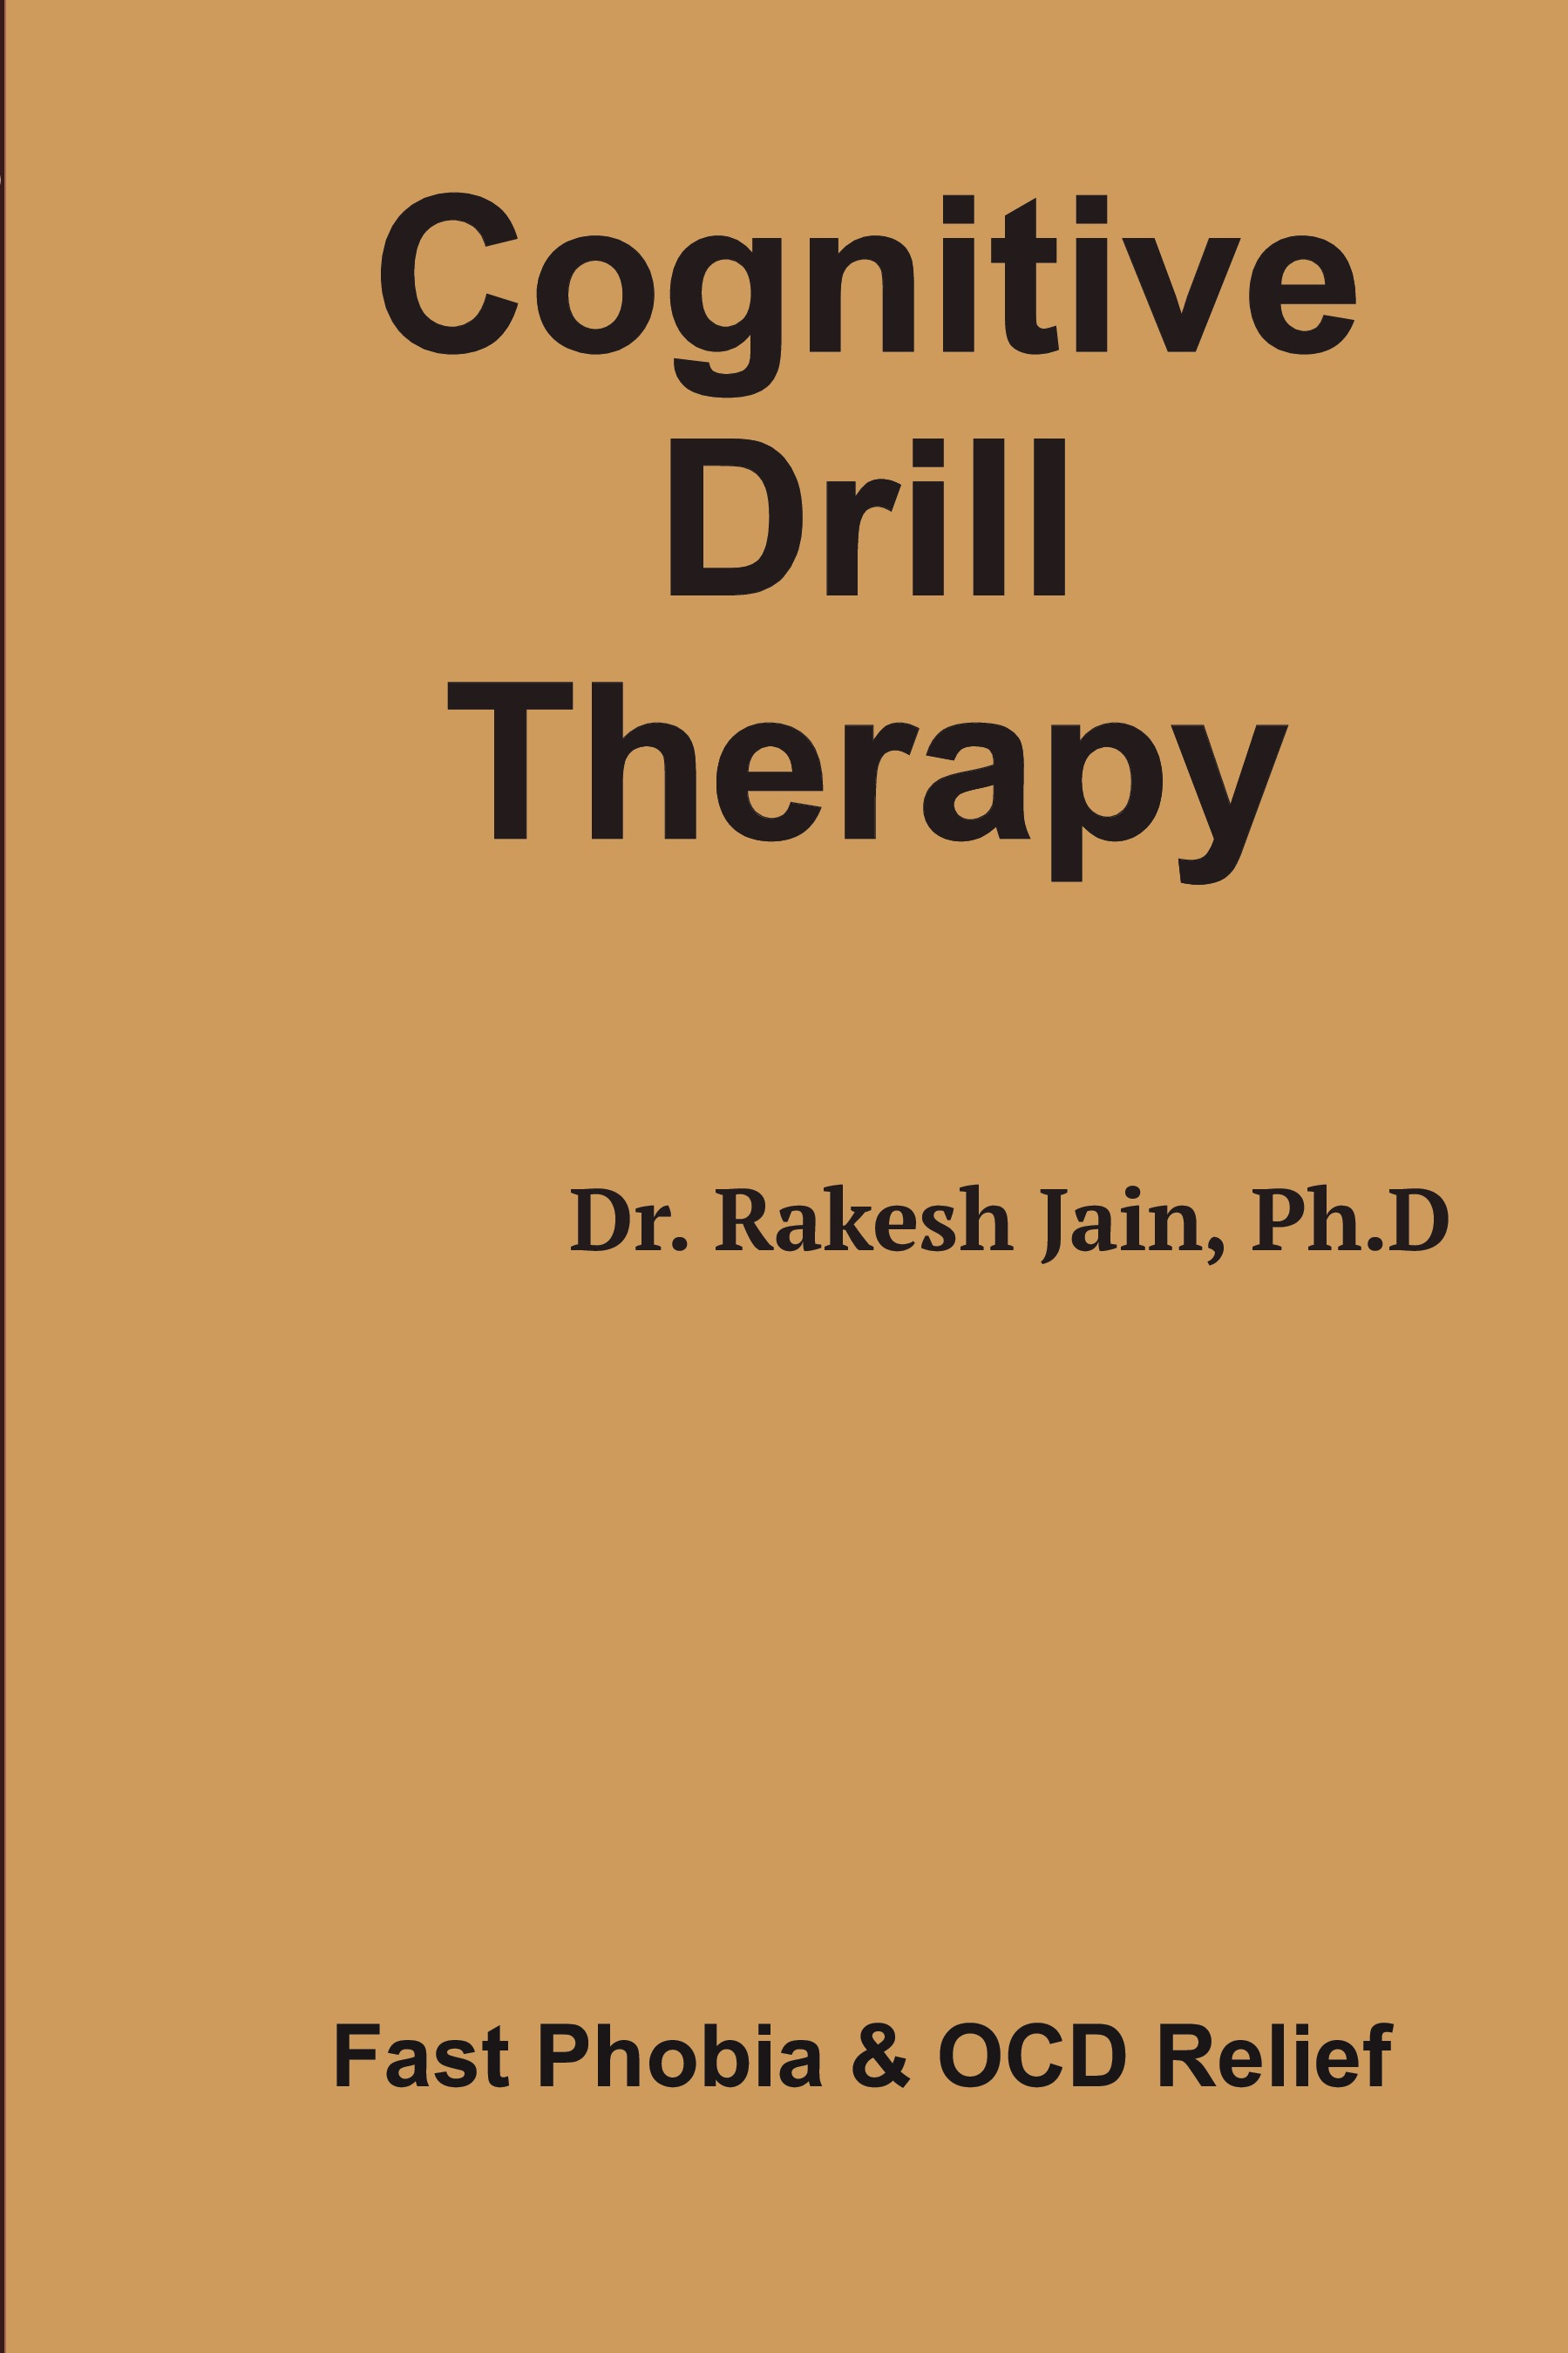 Cognitive Drill Therapy | Pothi com